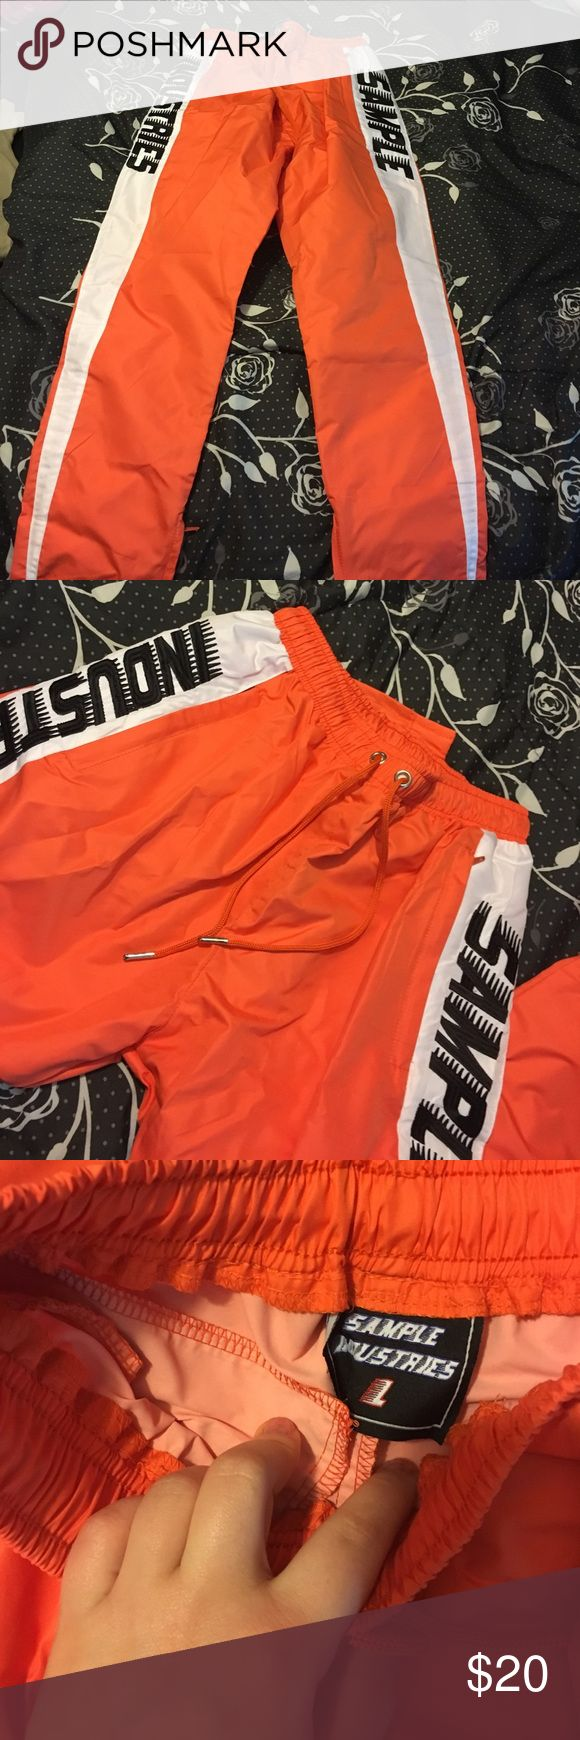 Rain pants These are brand new purchased from online the size says large but it's a European large so these would fit a small/XS H&M Pants Track Pants & Joggers